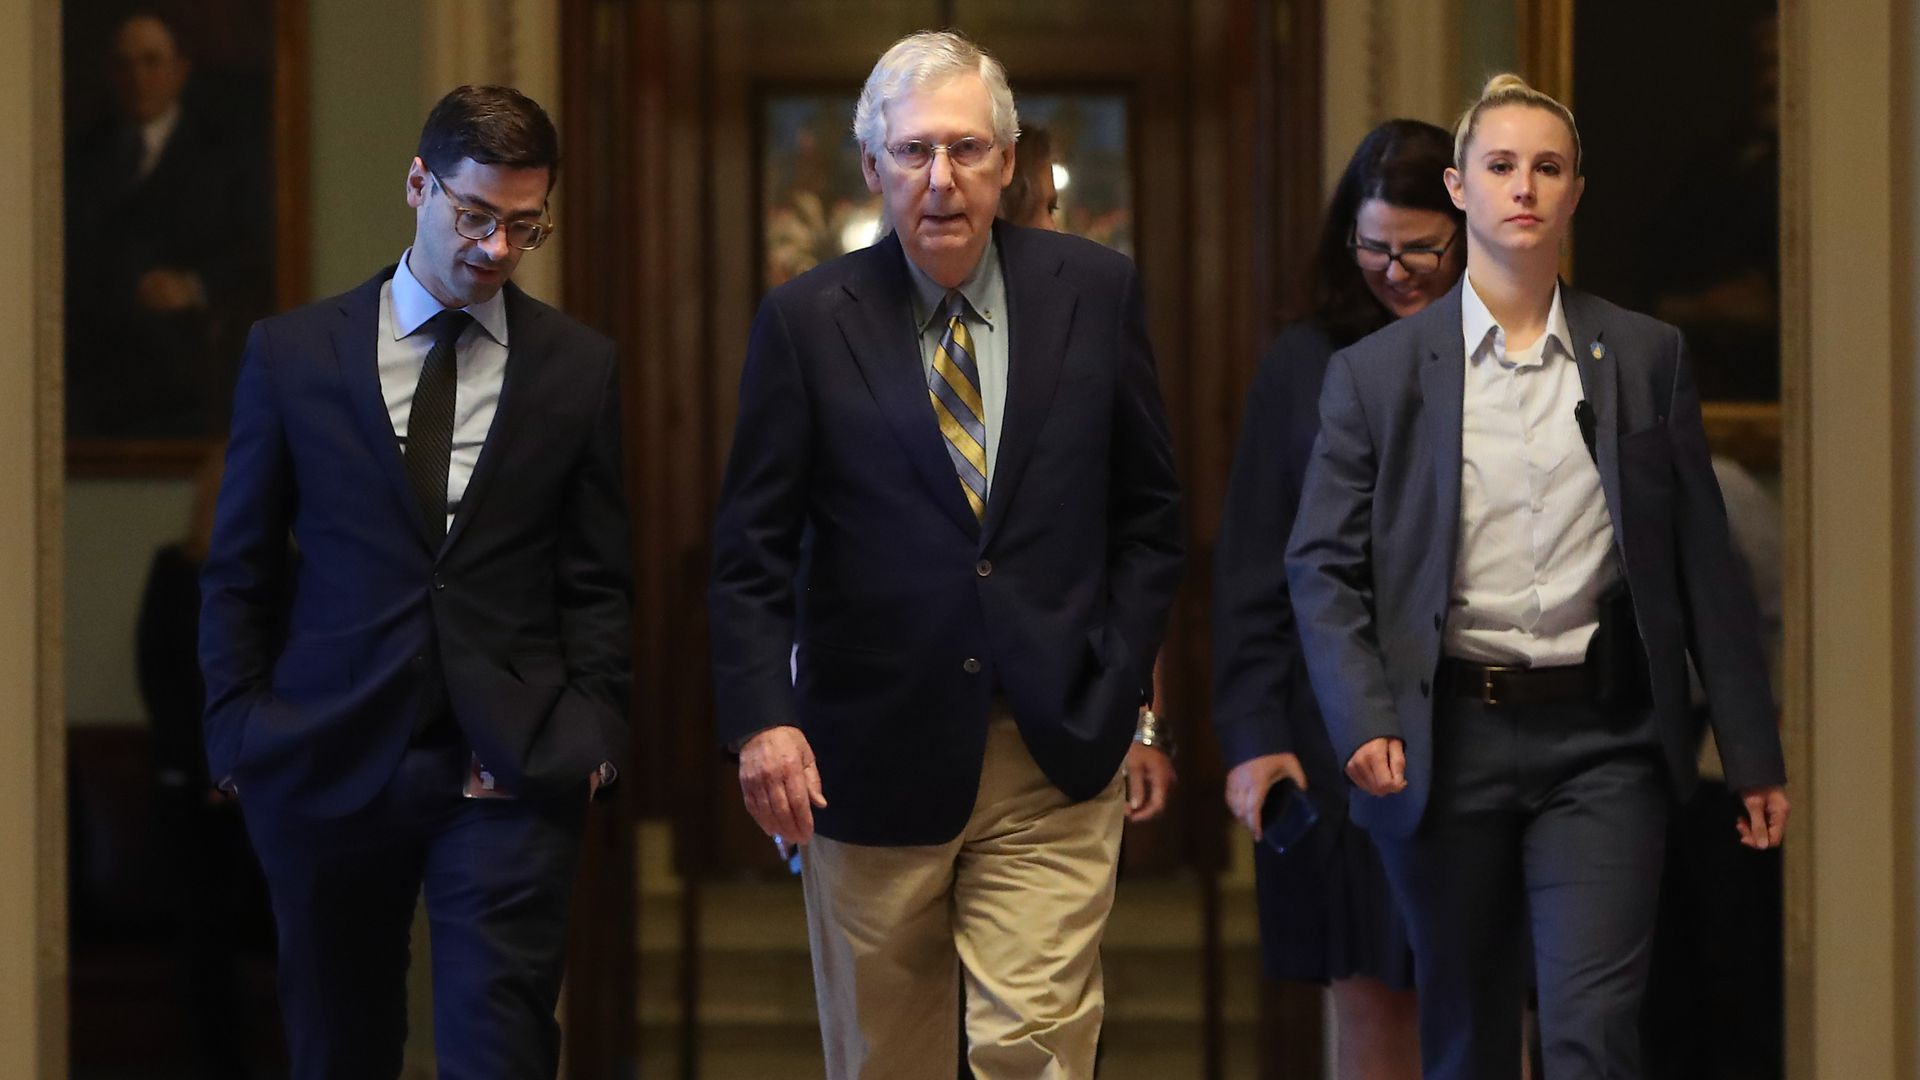 Senate Majority Leader Mitch McConnell of Kentucky walks through the Senate with two aides.